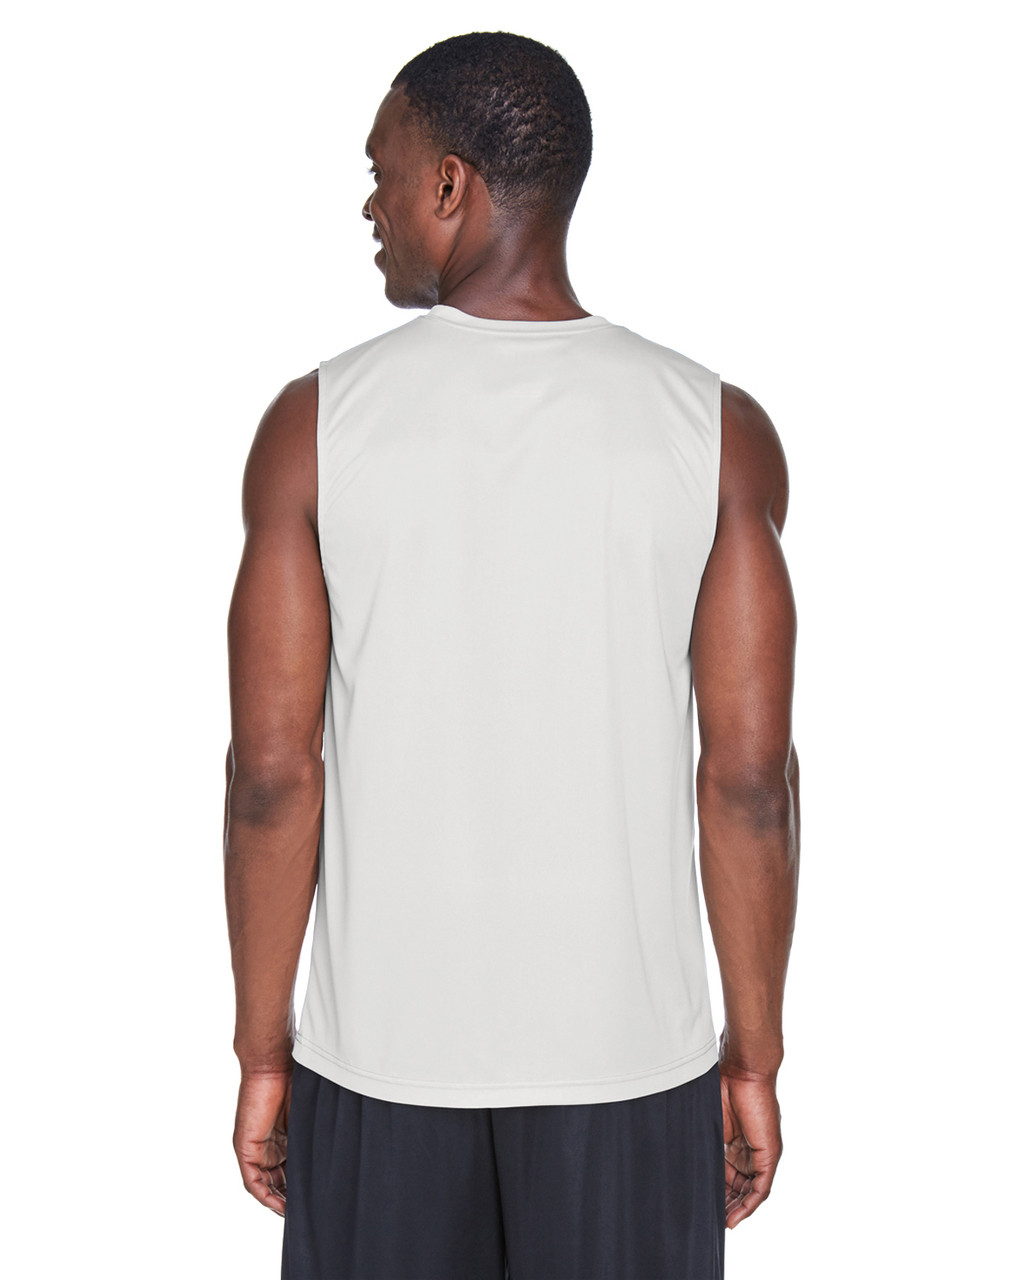 Sport Silver - Back, TT11M Team 365 Men's Performance Muscle T-Shirt | BlankClothing.ca